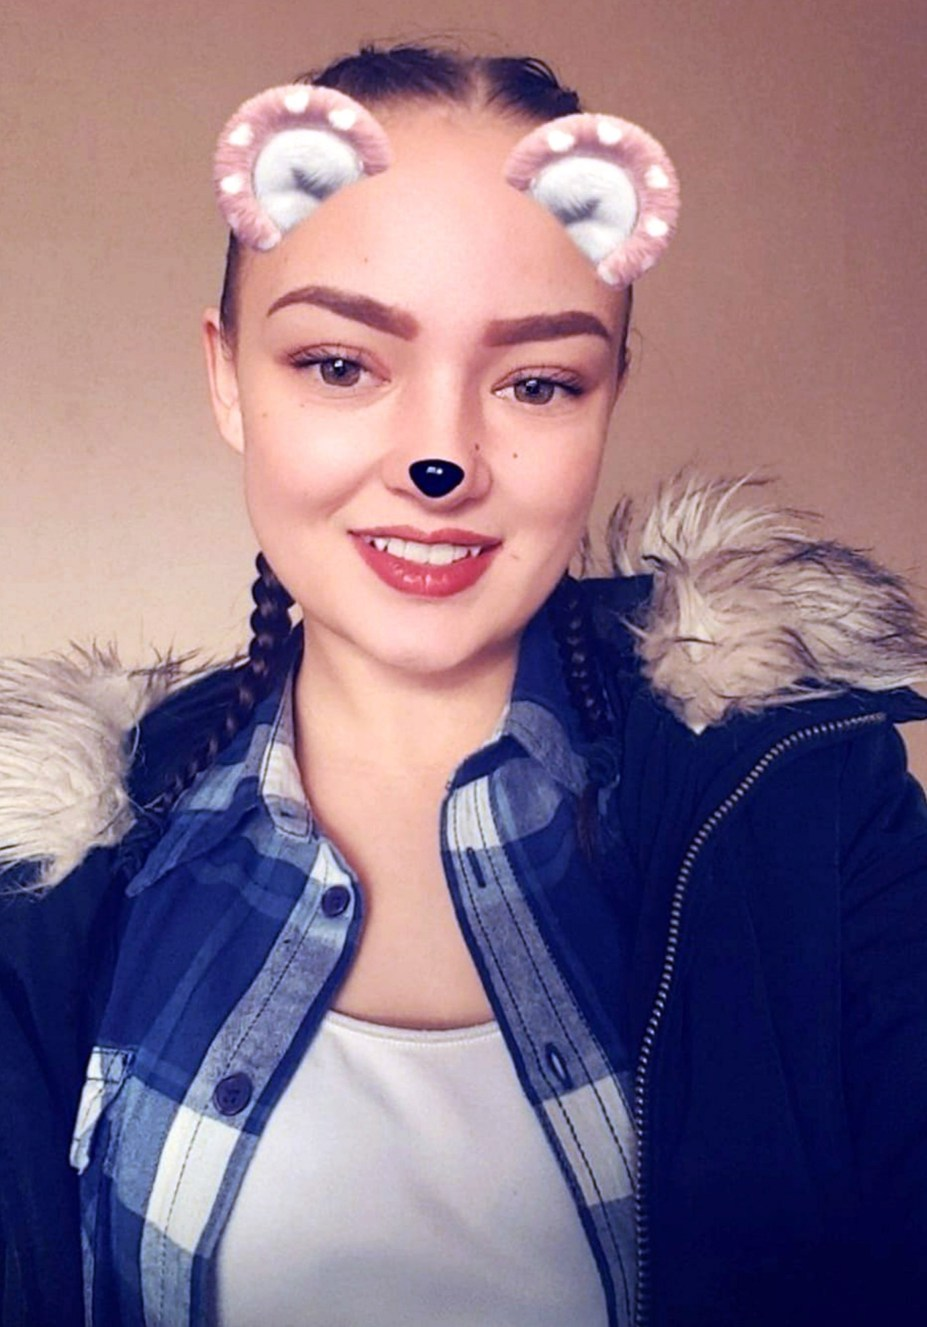 Tributes have been paid to 'kind and caring' Keira